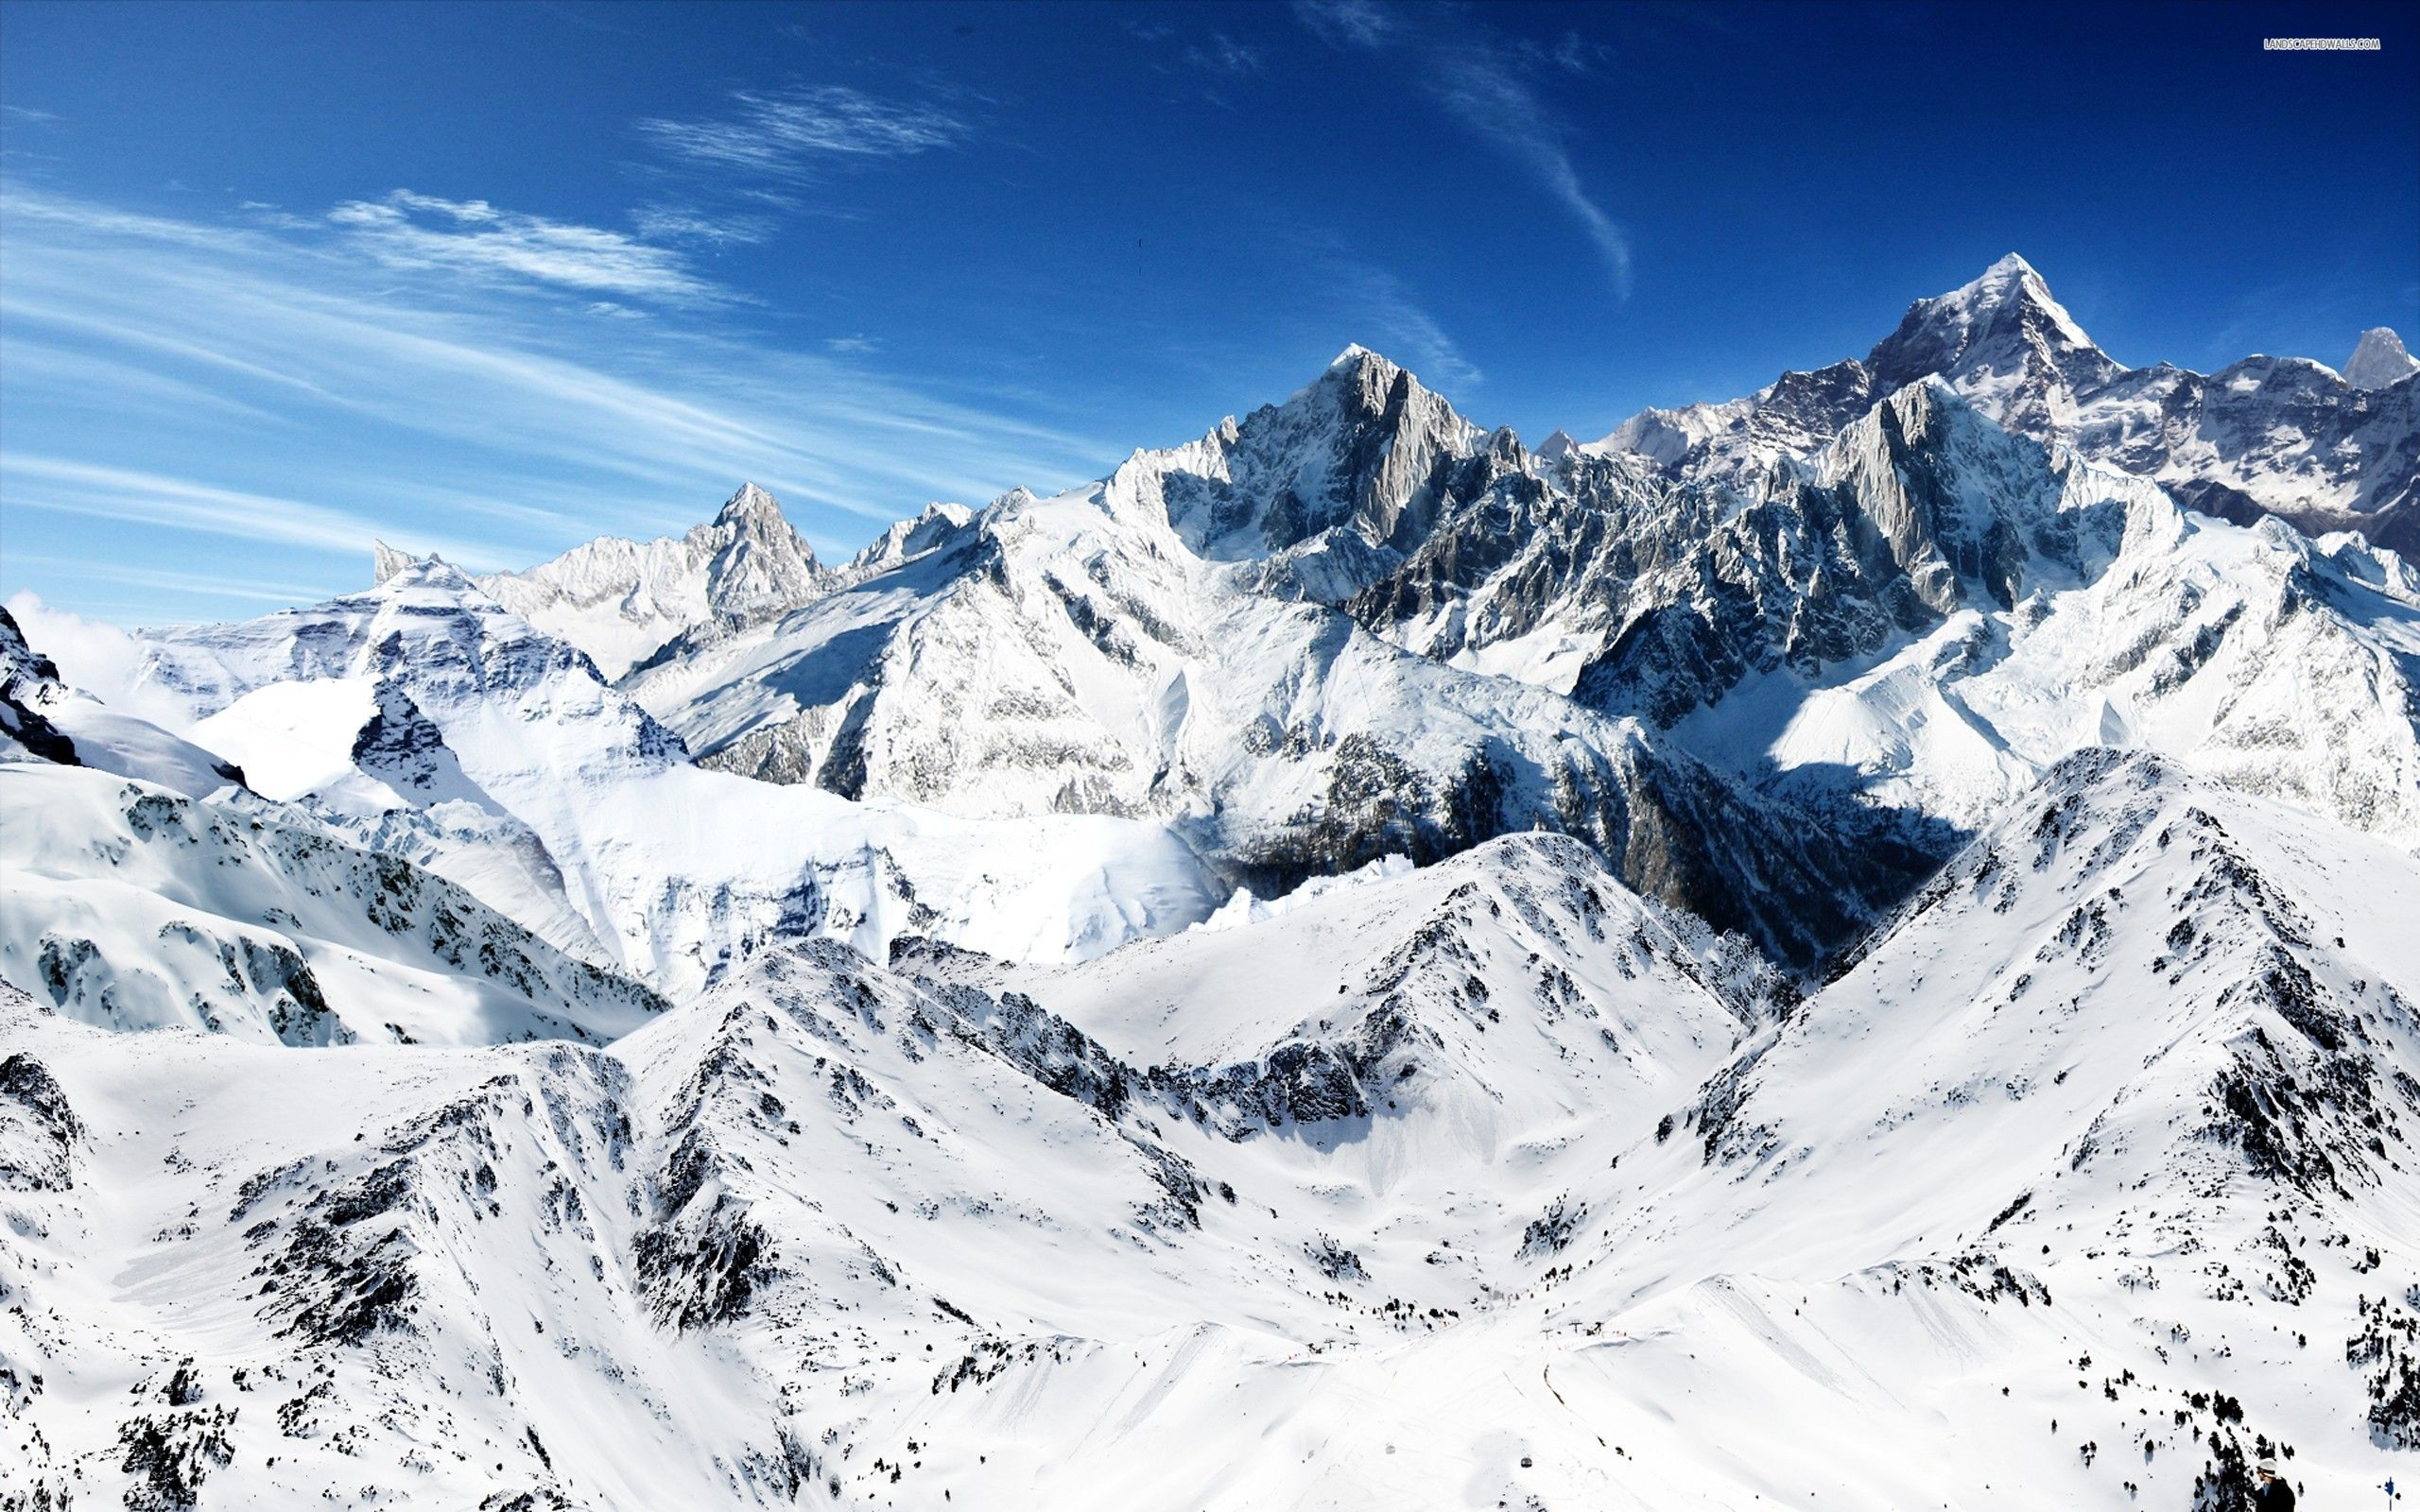 Snow Mountain Wallpaper 2560x1600 68877 With Images